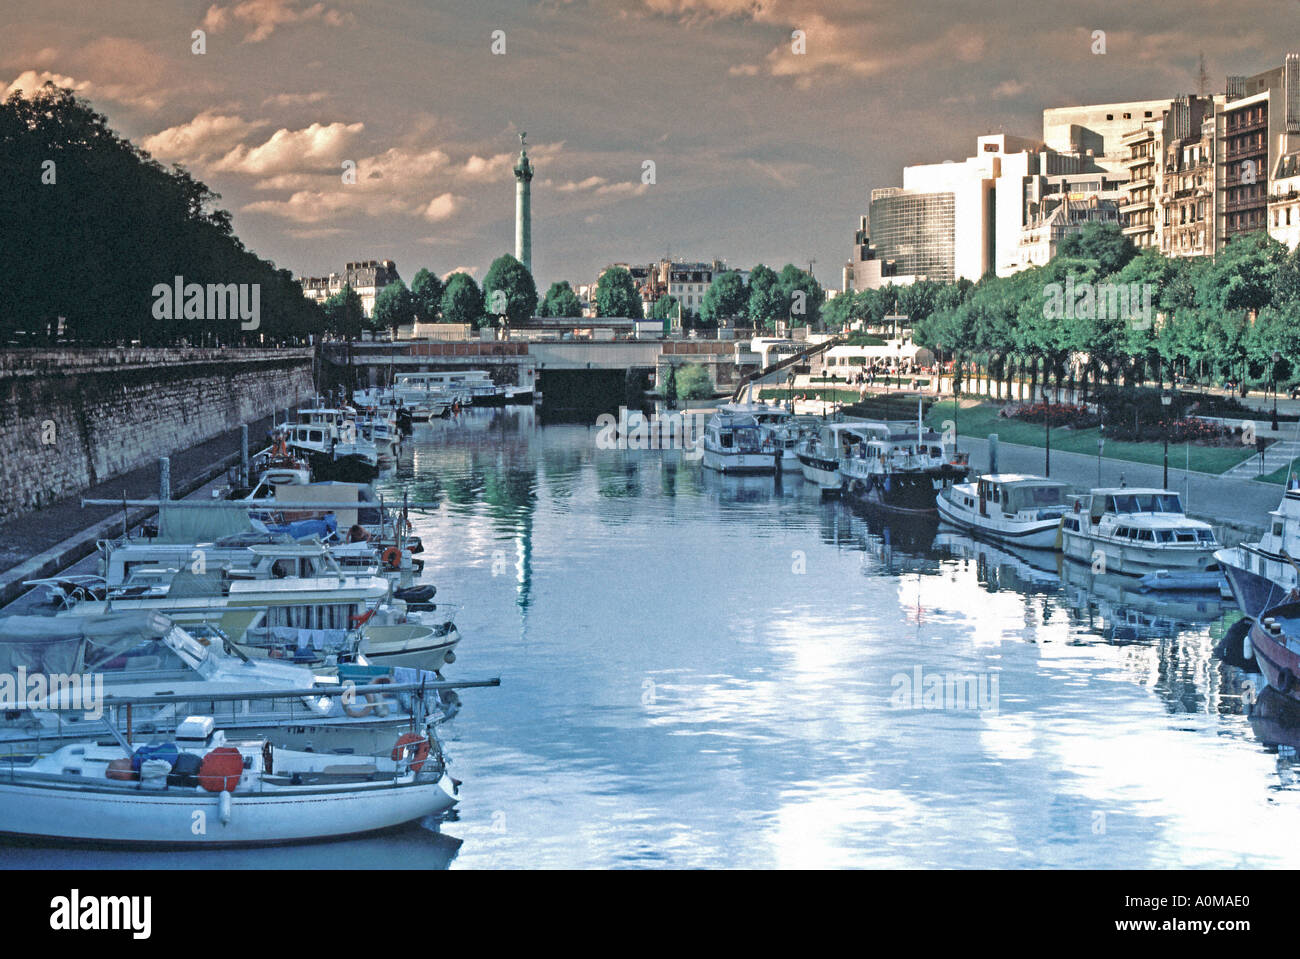 Paris France 'St Martin's Canal' la Bastille with the 'July Column' Boats on Waterway in 'City Center' - Stock Image